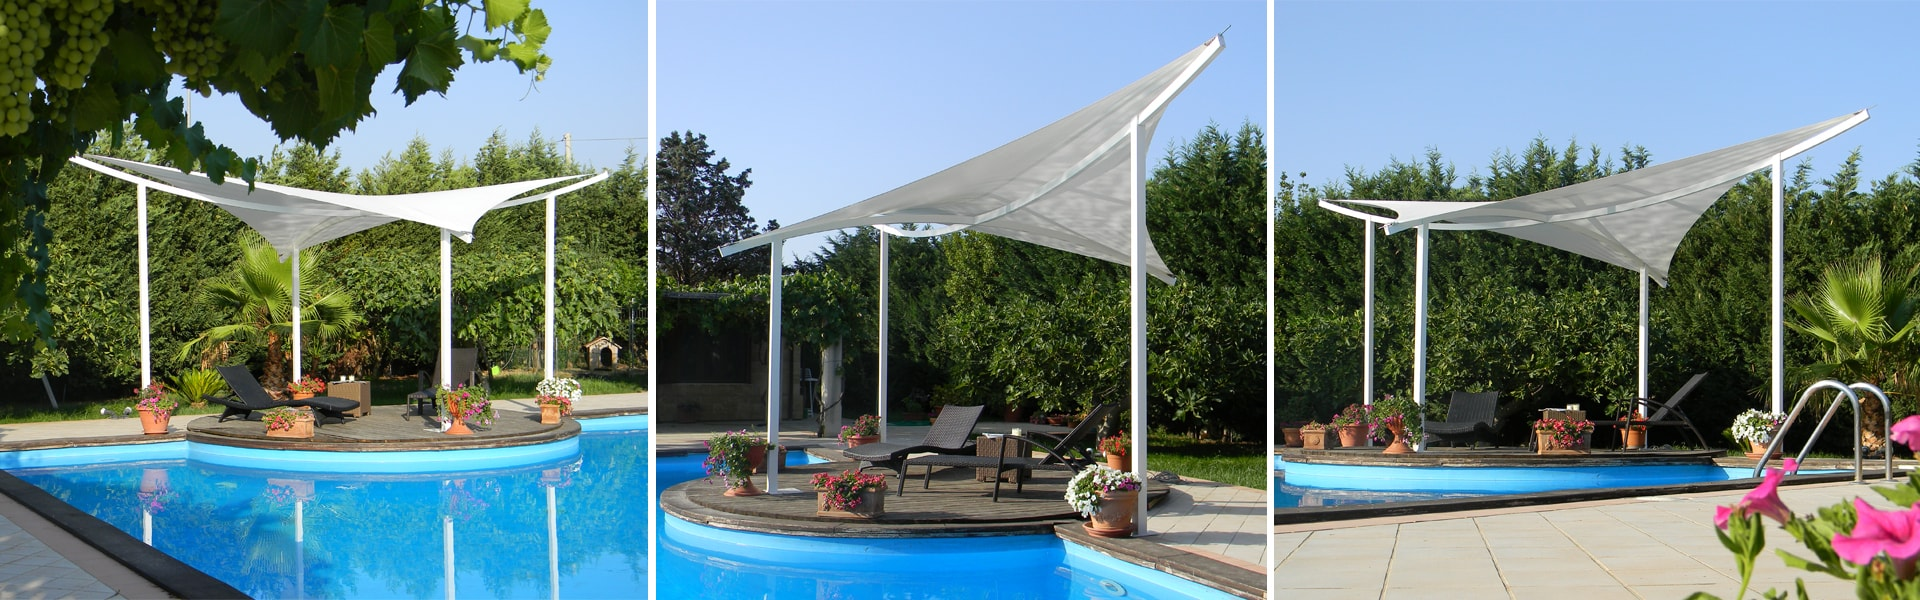 tensile structures in pune